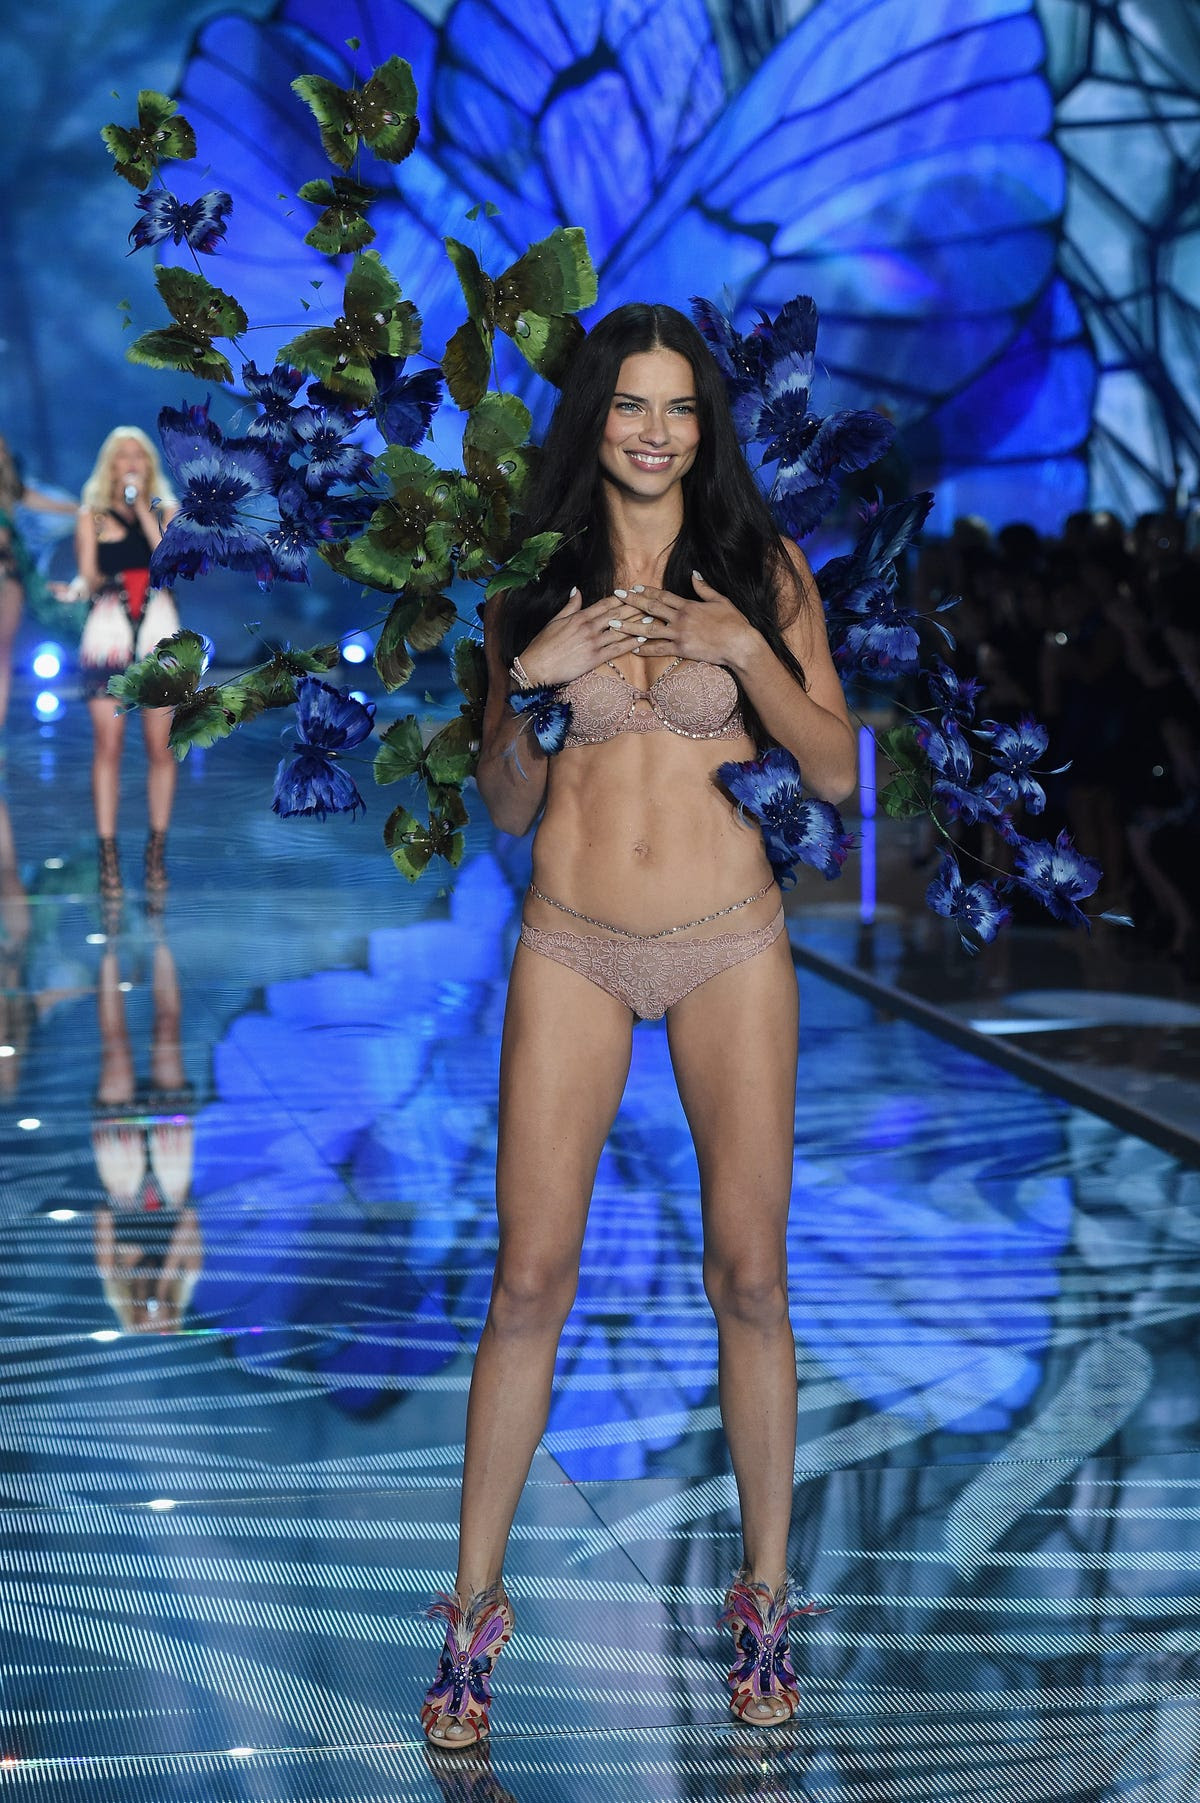 Unsurprisingly, Adriana Lima stunned in a skin-toned ensemble.